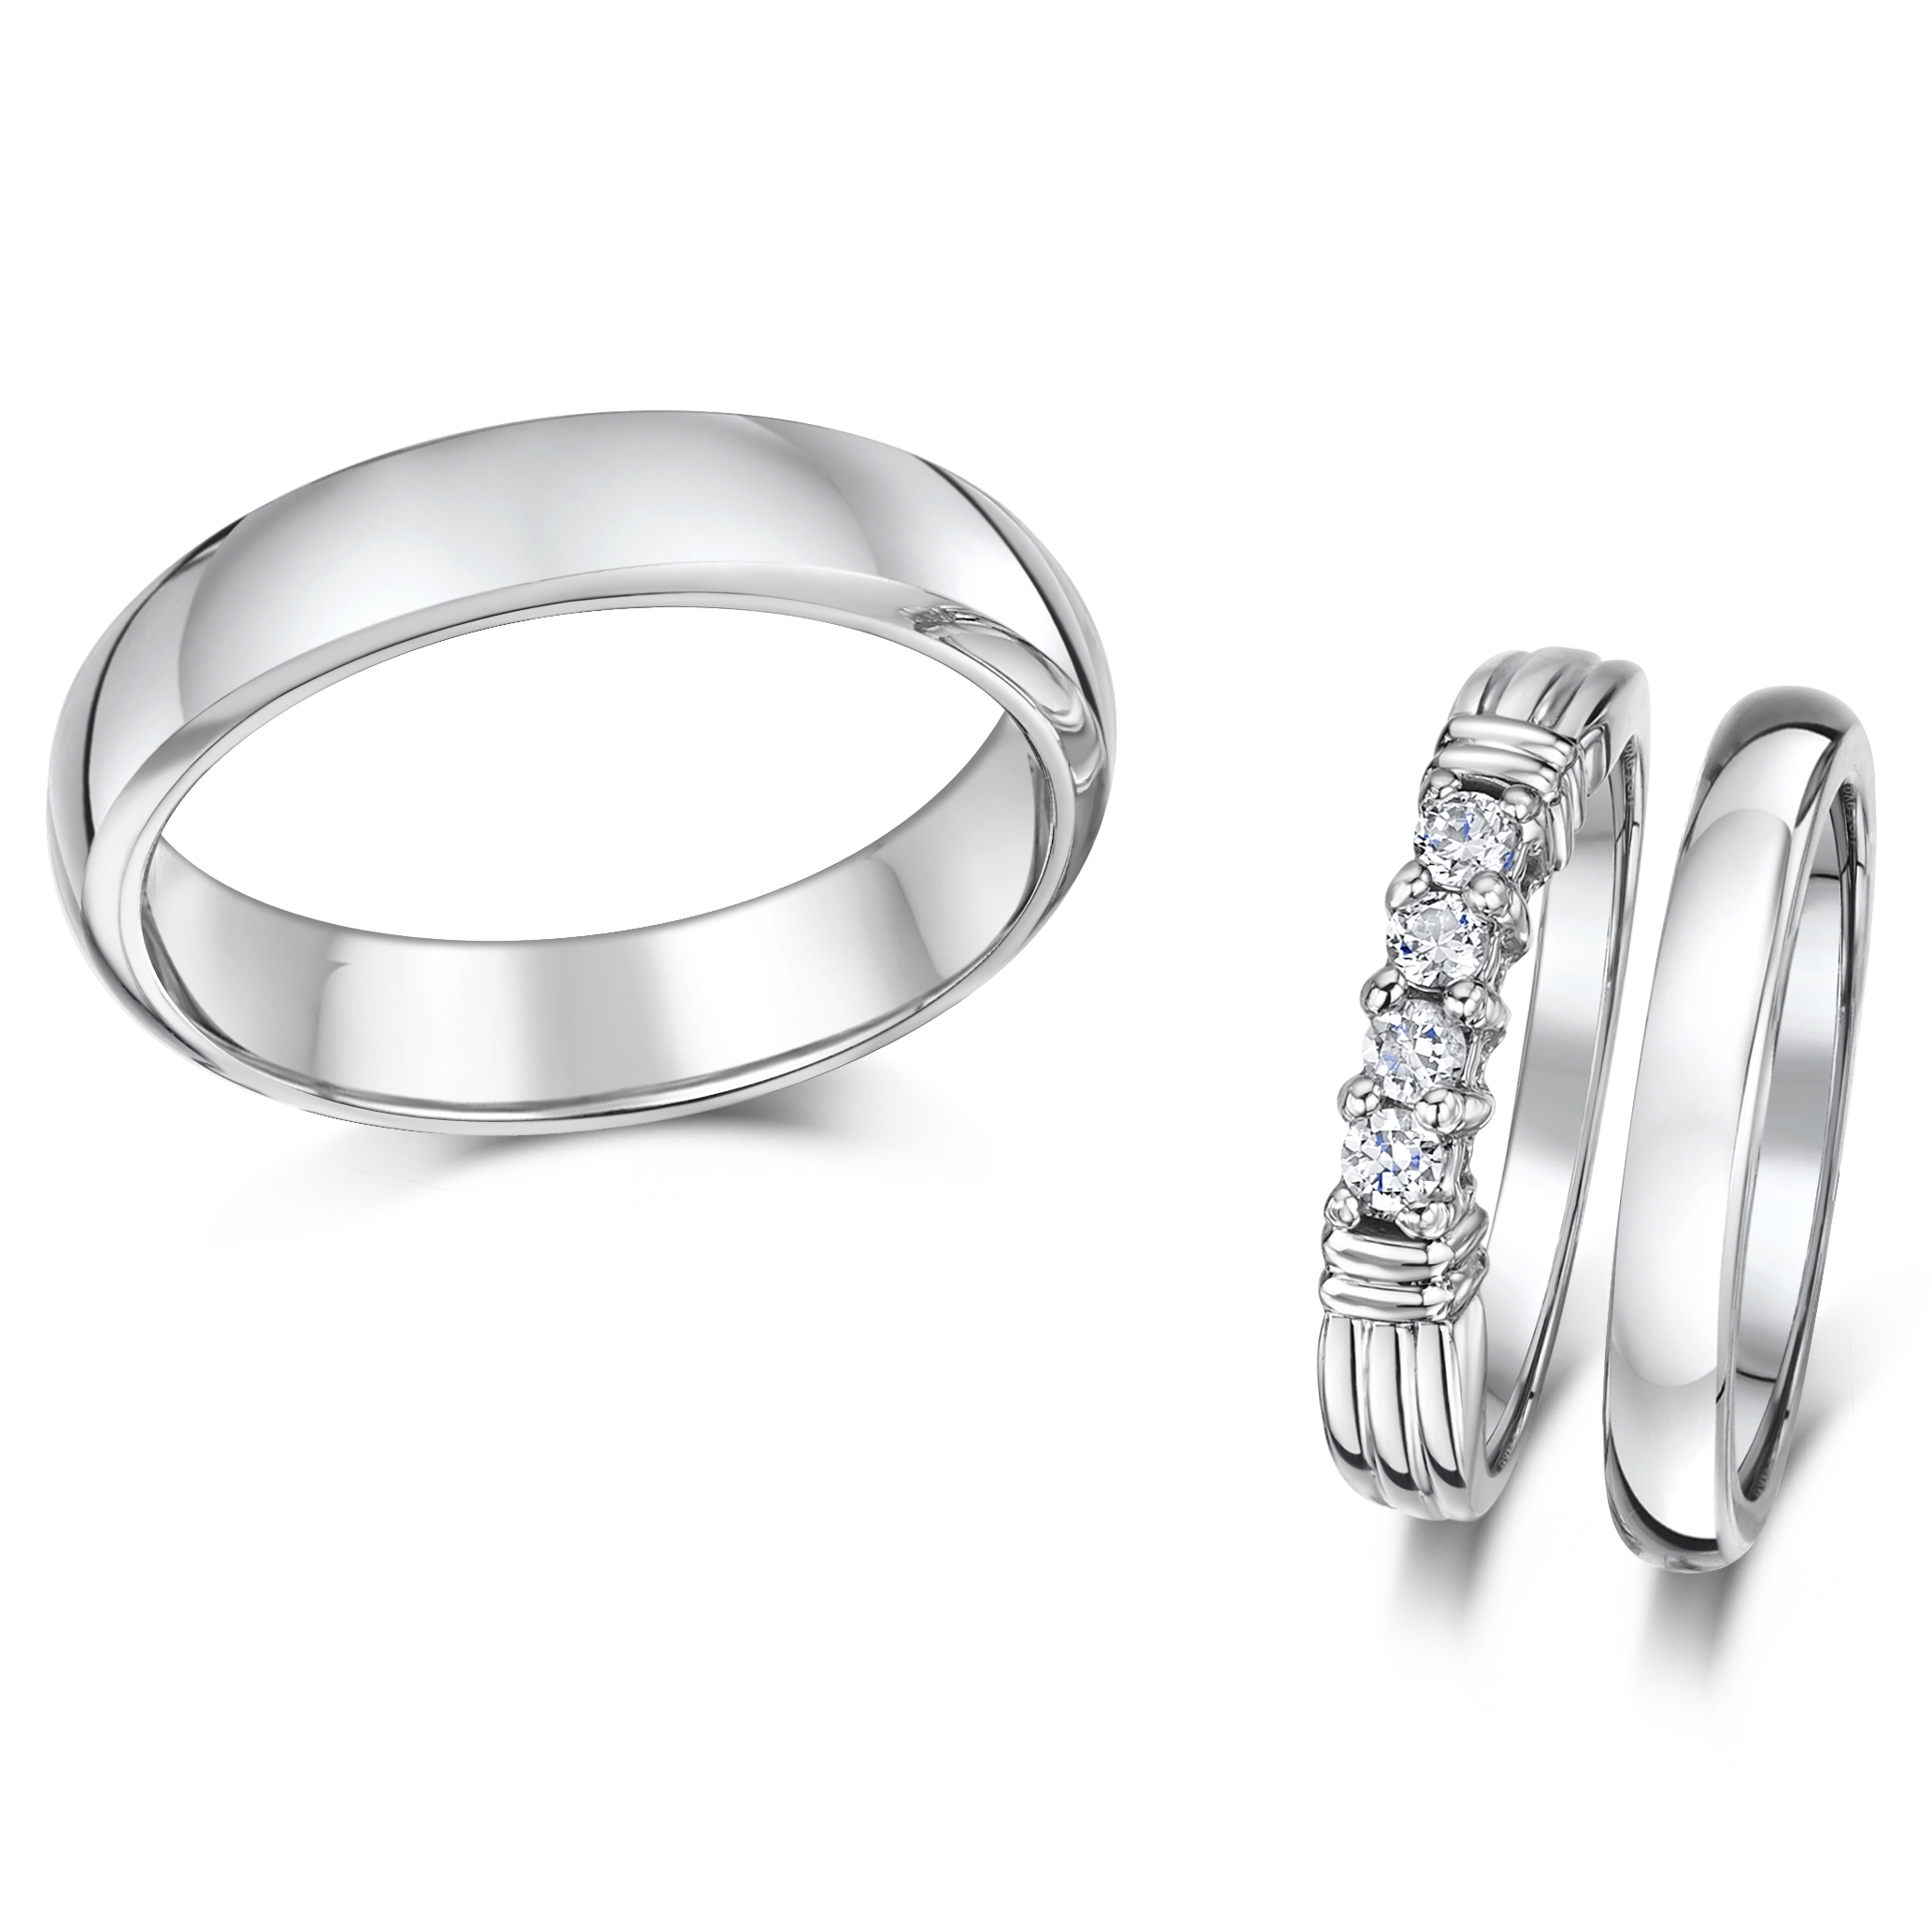 Cobalt 3mm Engagement Eternity & 3&5mm His Hers Wedding Rings